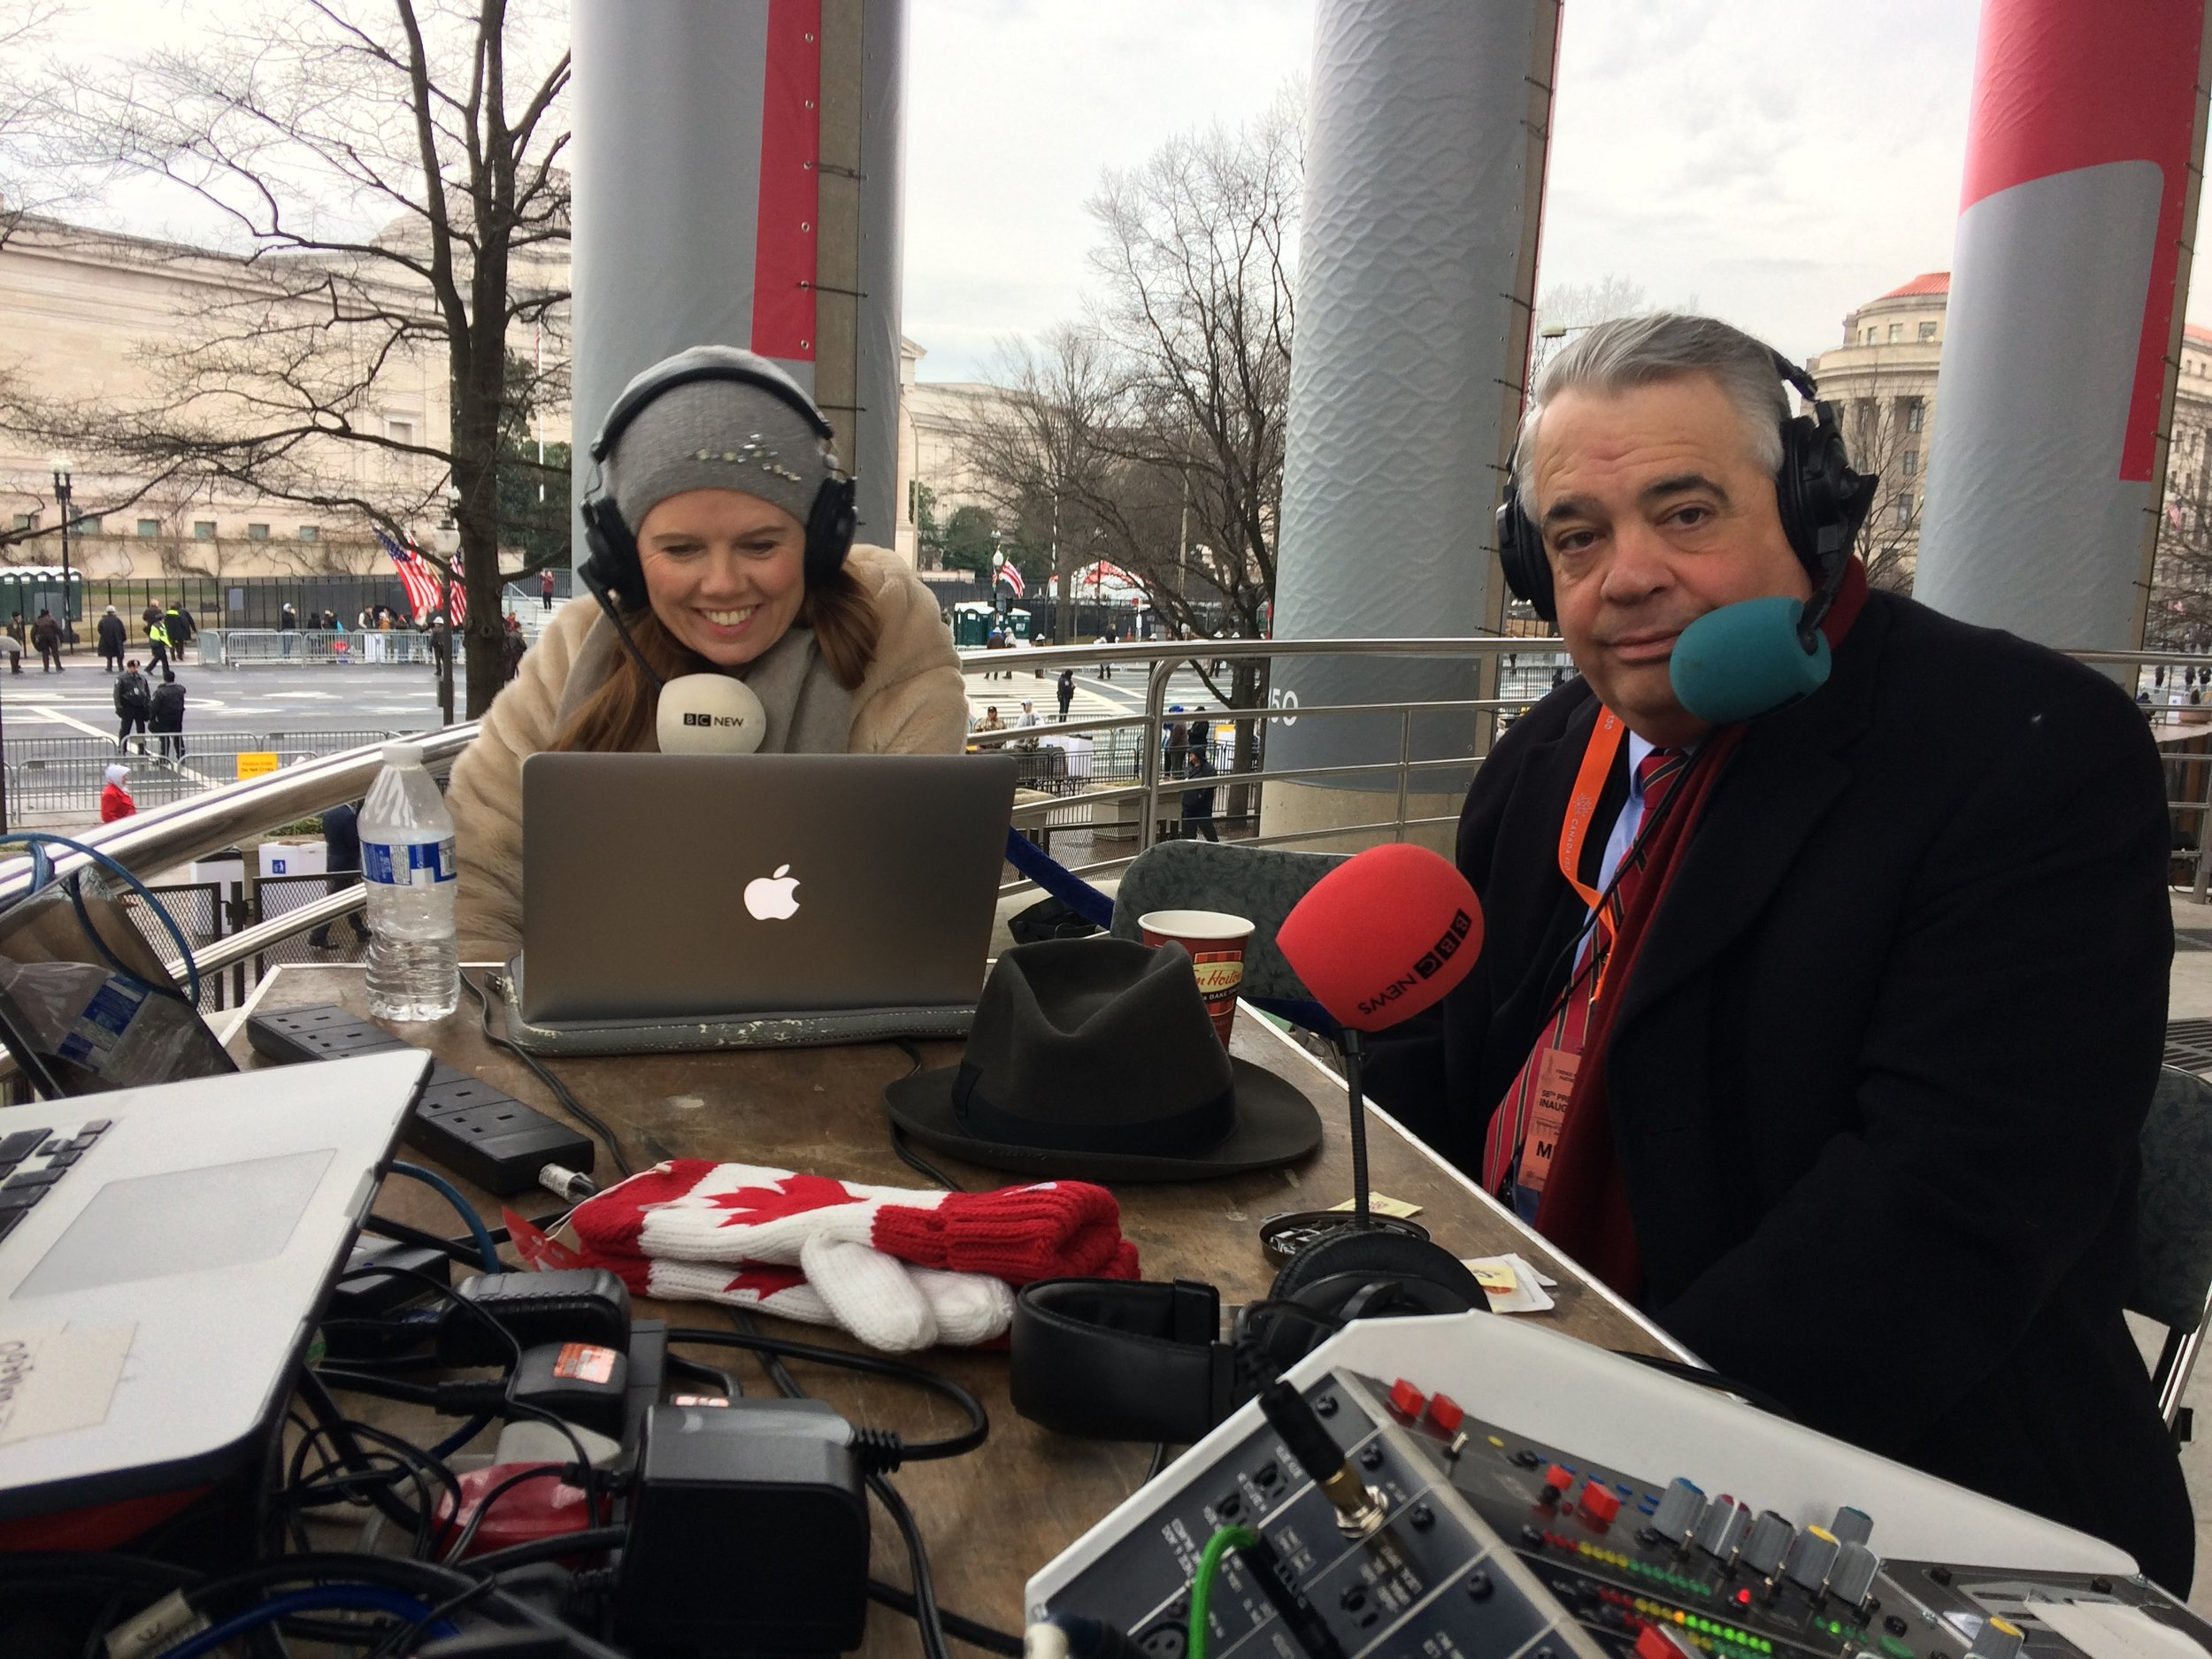 A freezing and fascinating 12 hours anchoring the inauguration of US President Donald J Trump for the BBC World Service.